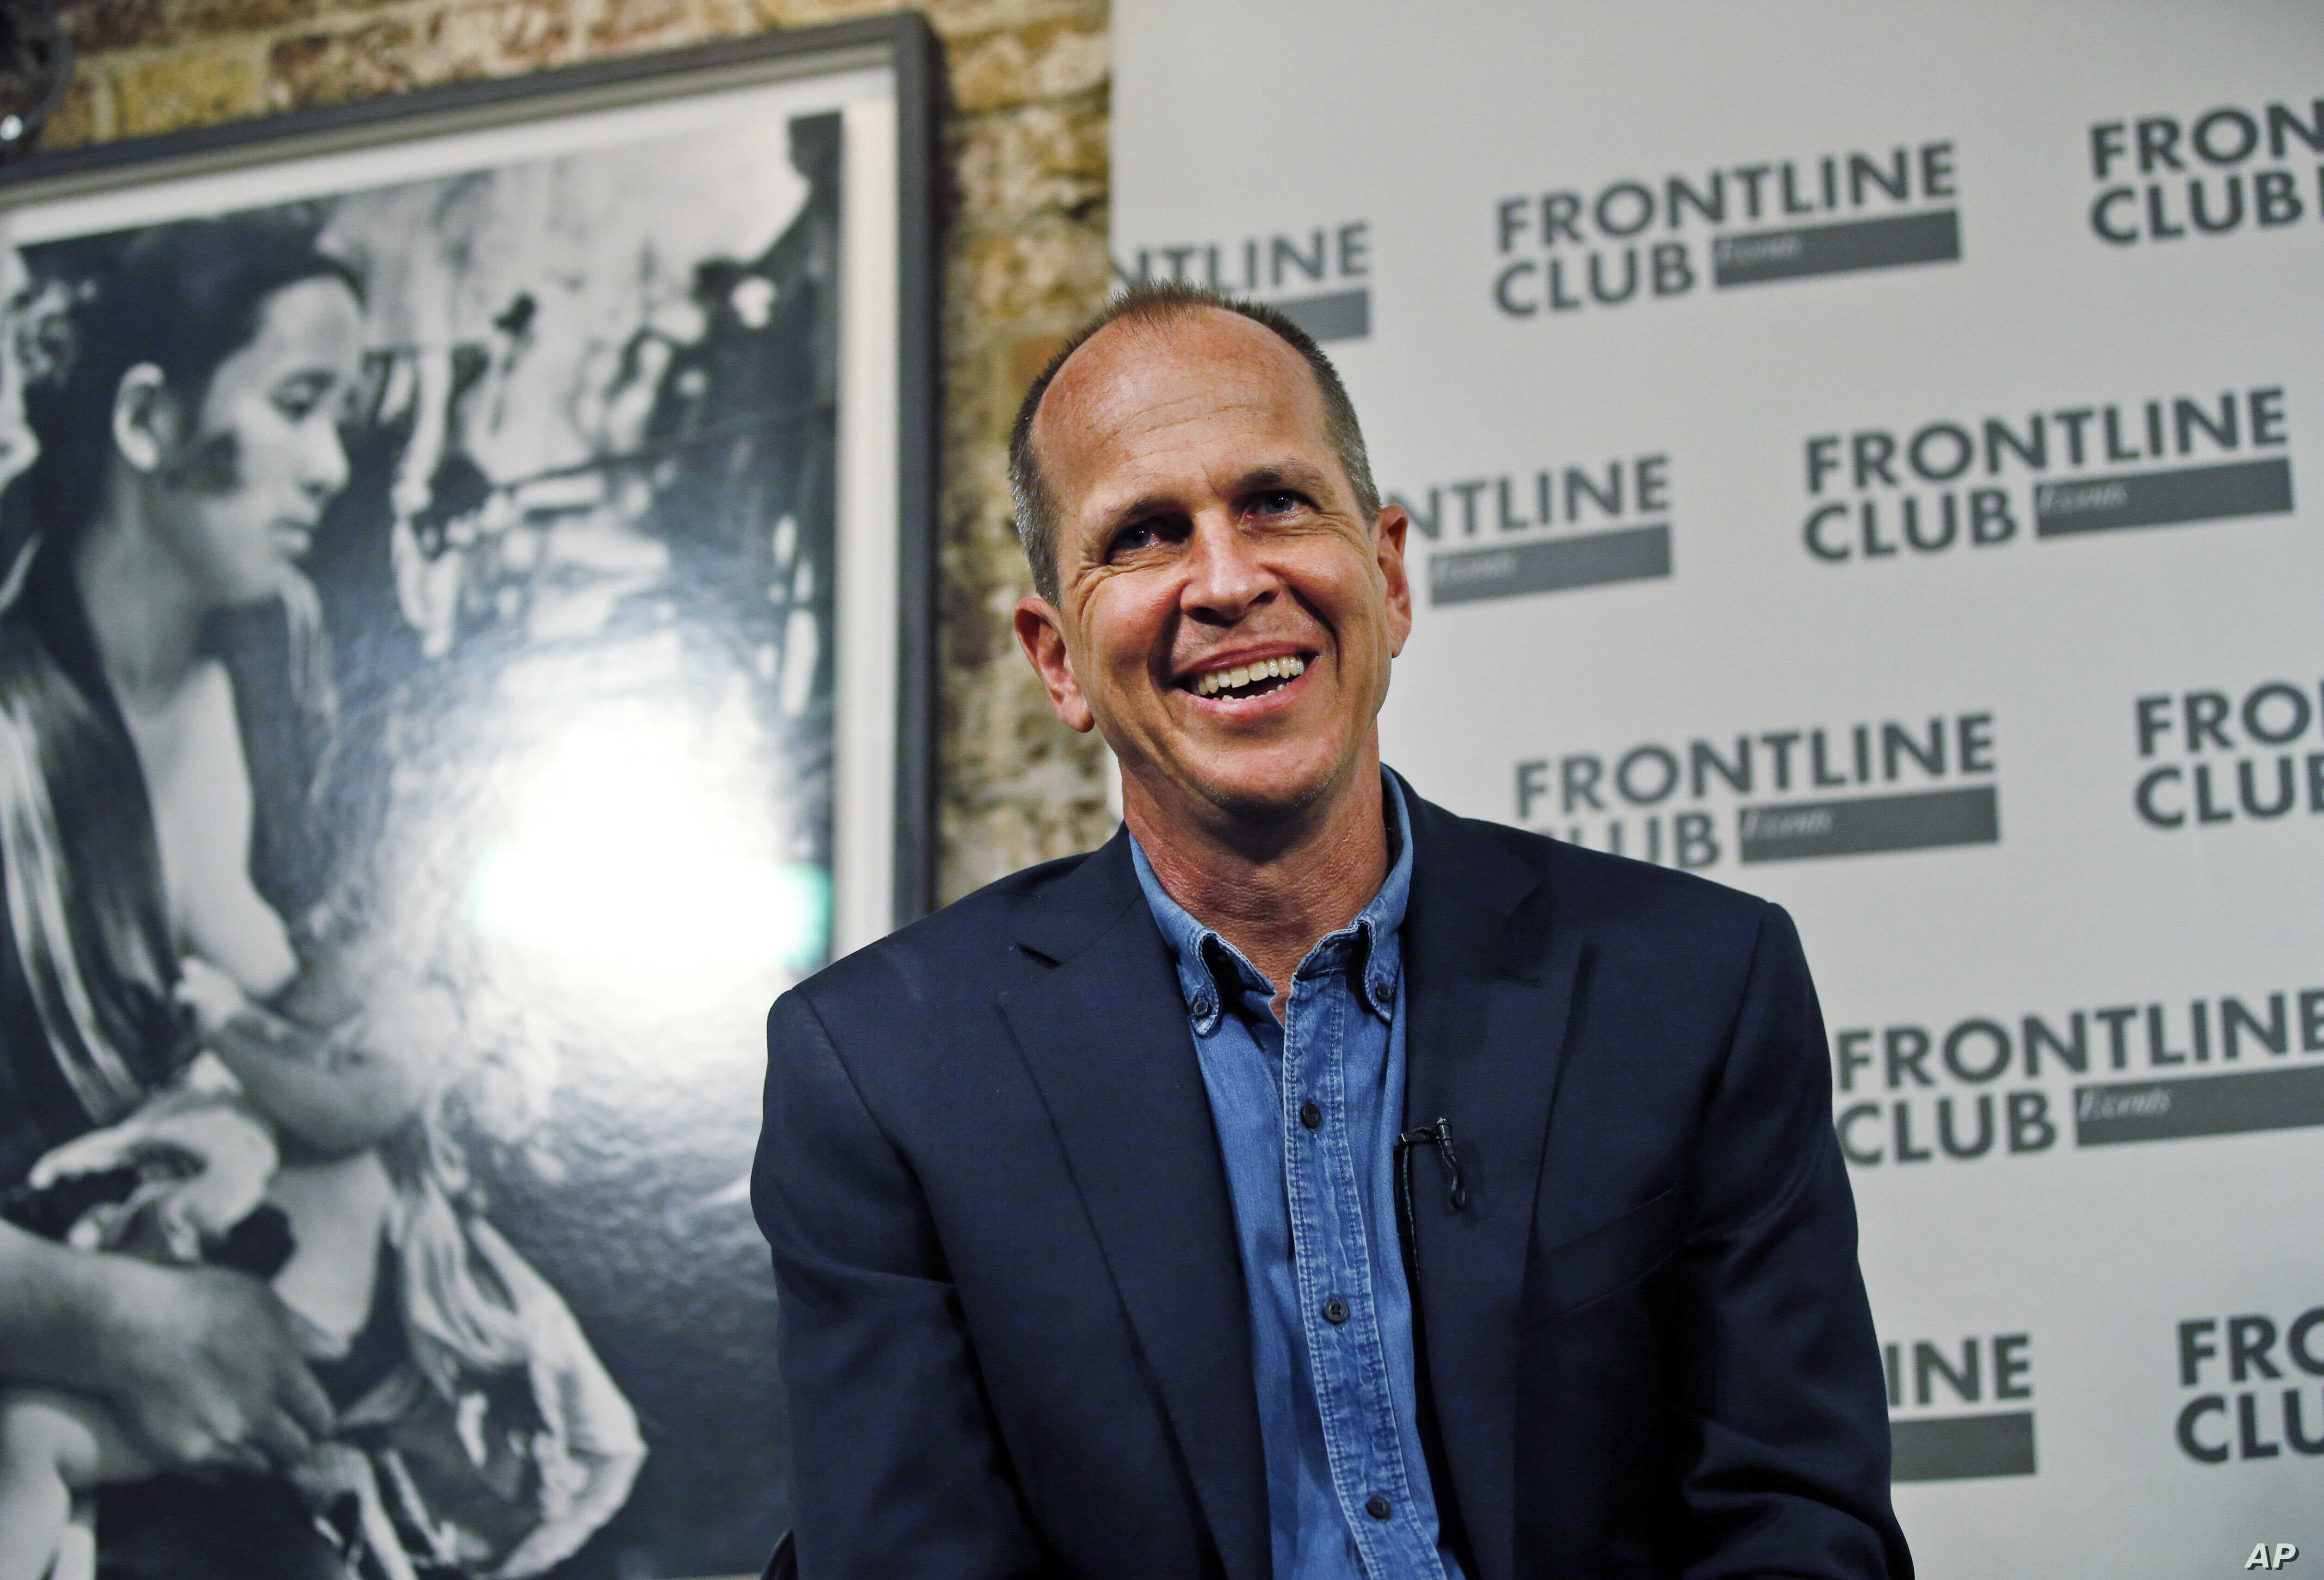 FILE - Freed Al Jazeera journalist Peter Greste smiles as he answers a question during an event in central London, Feb. 19, 2015.